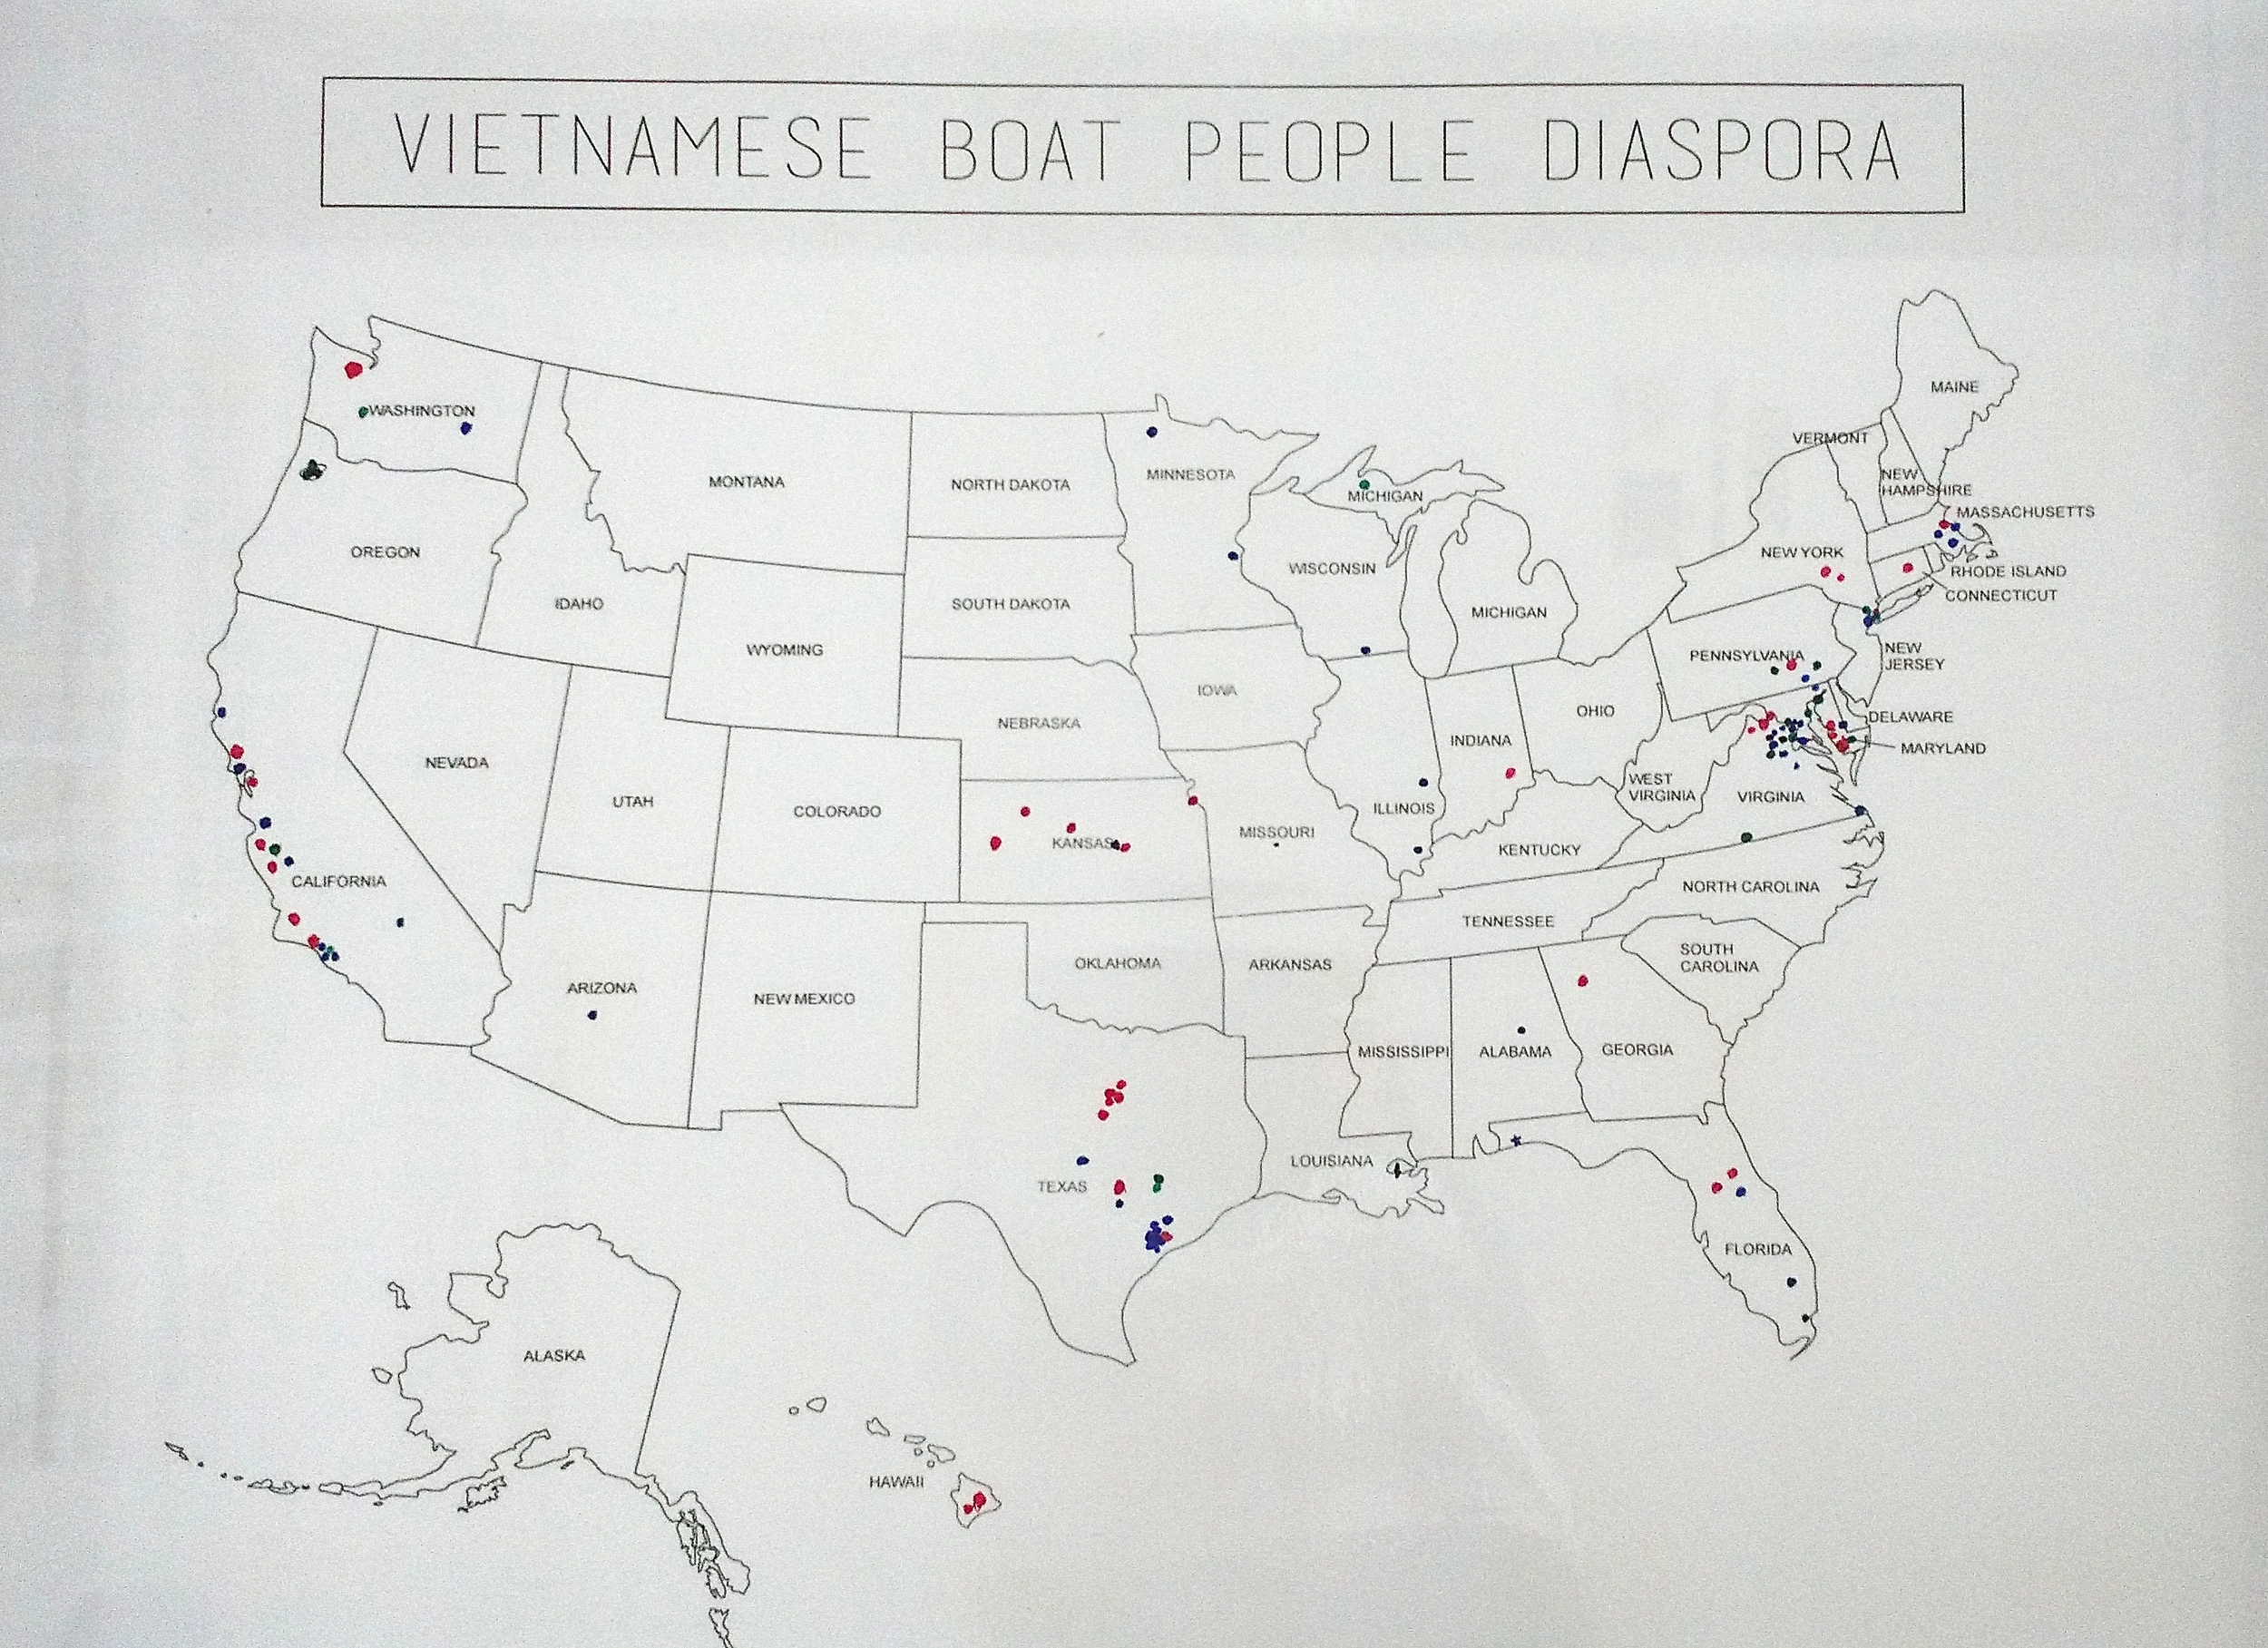 Vietnamese Boat People Diaspora Map (USA) (This picture of the map was taken at the midway point of the event, therefore it is missing a few data points.)